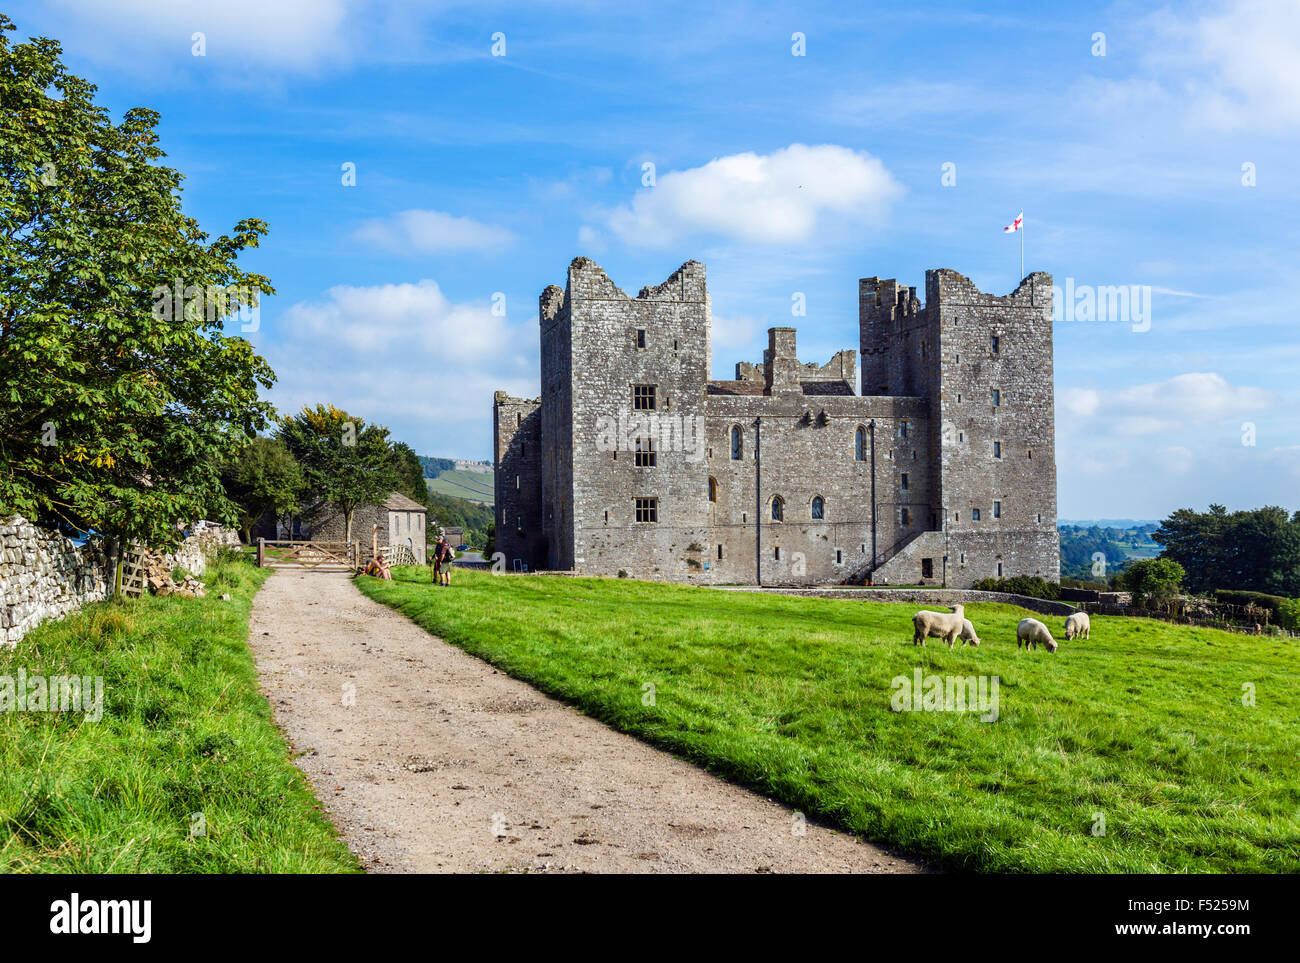 Walkers resting near Bolton Castle, Castle Bolton, Wensleydale, Yorkshire Dales, North Yorkshire, England, UK Stock Photo